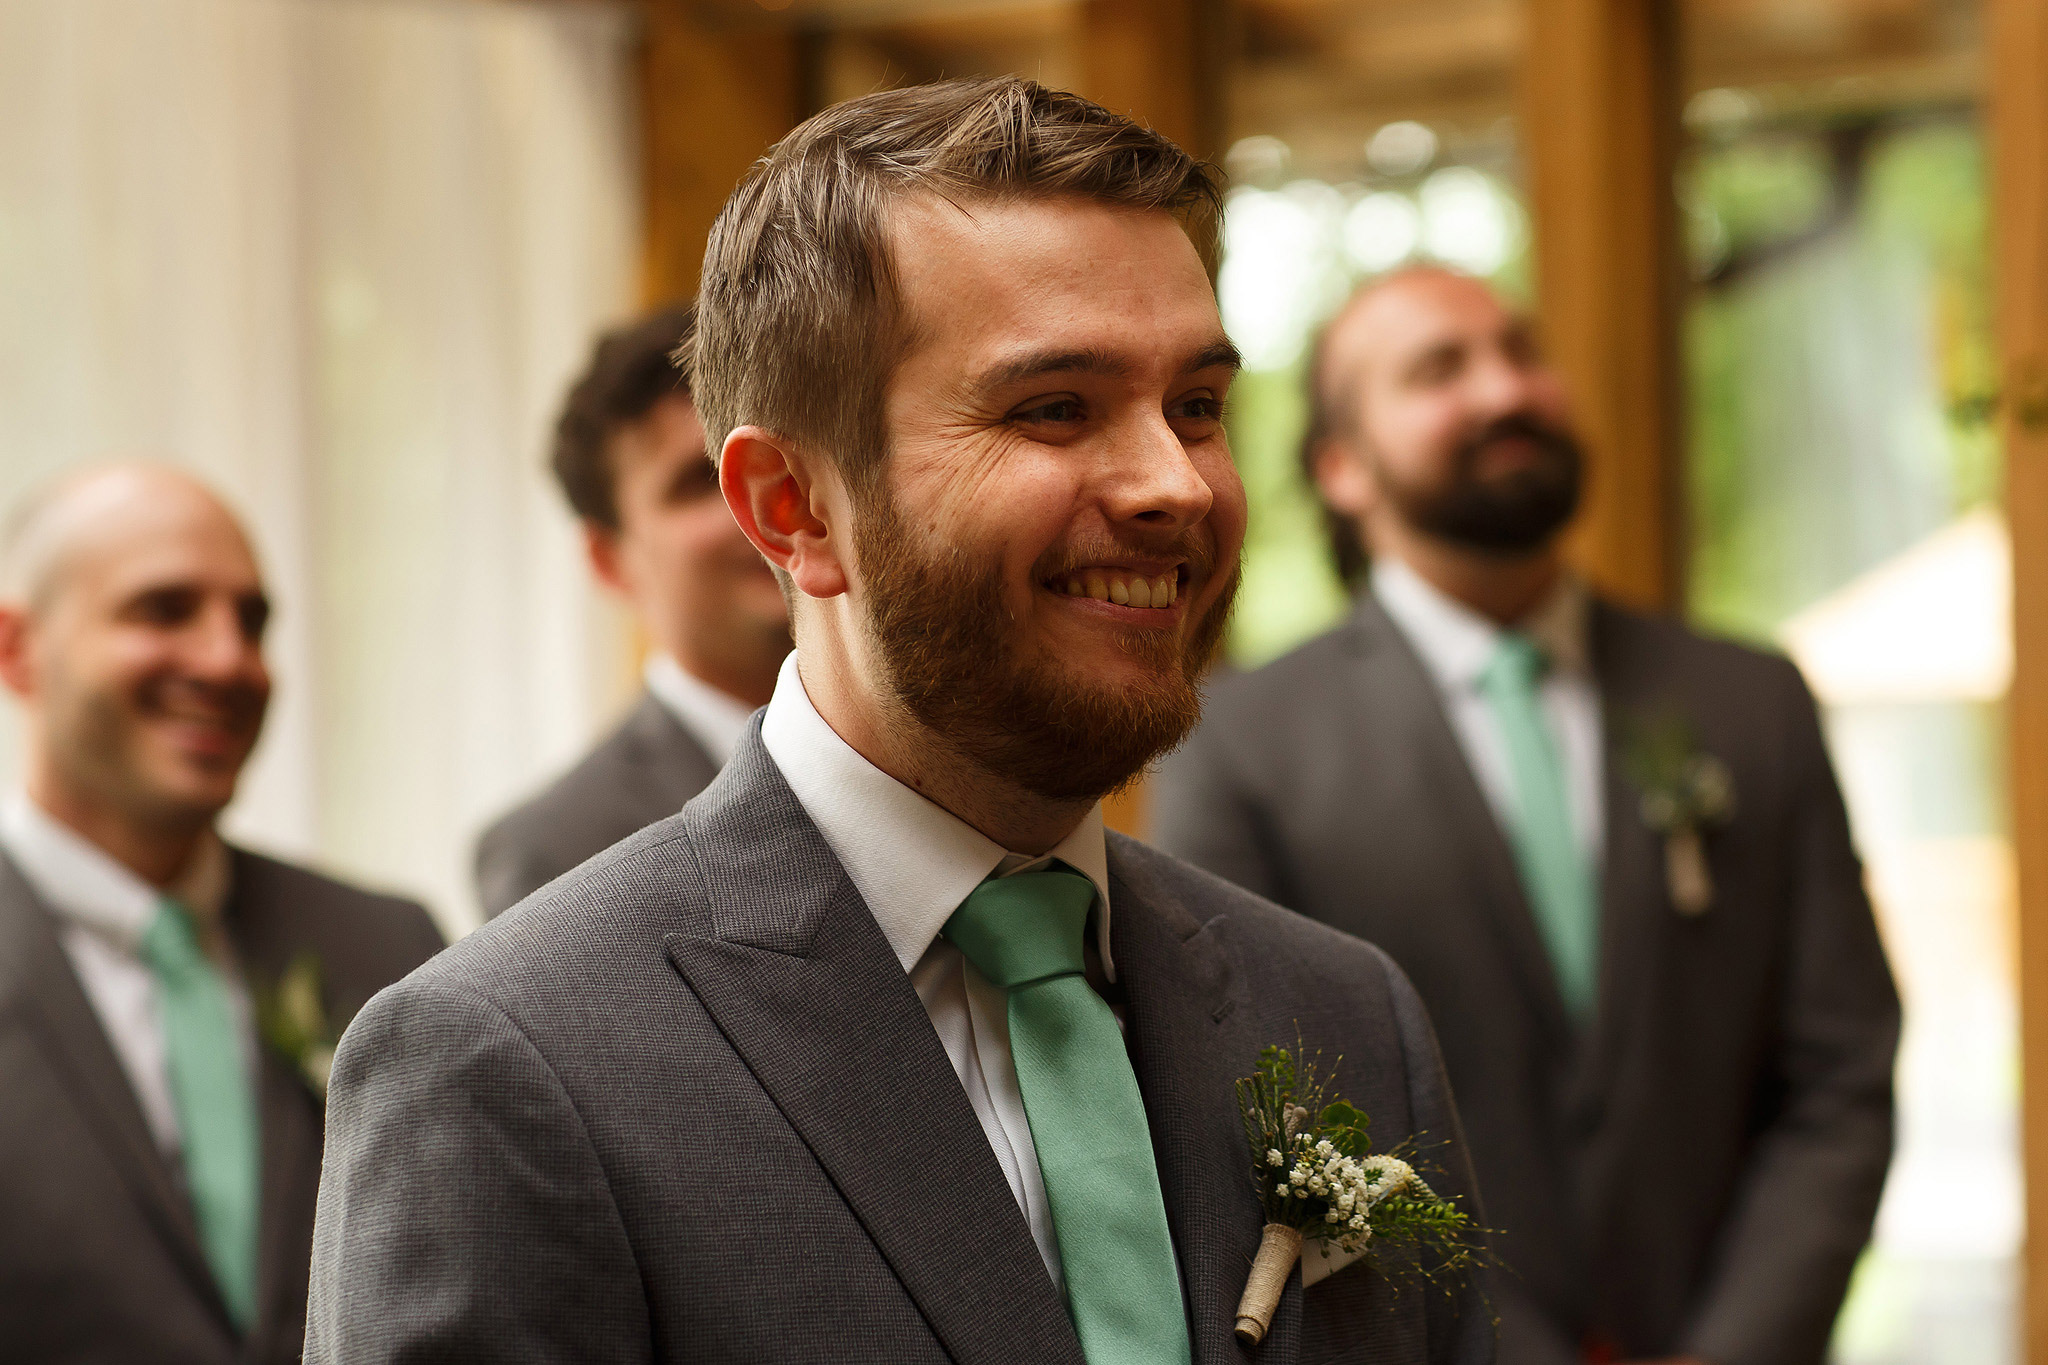 Groom wearing grey suit and mint green tie smiling as he sees bride for the first time